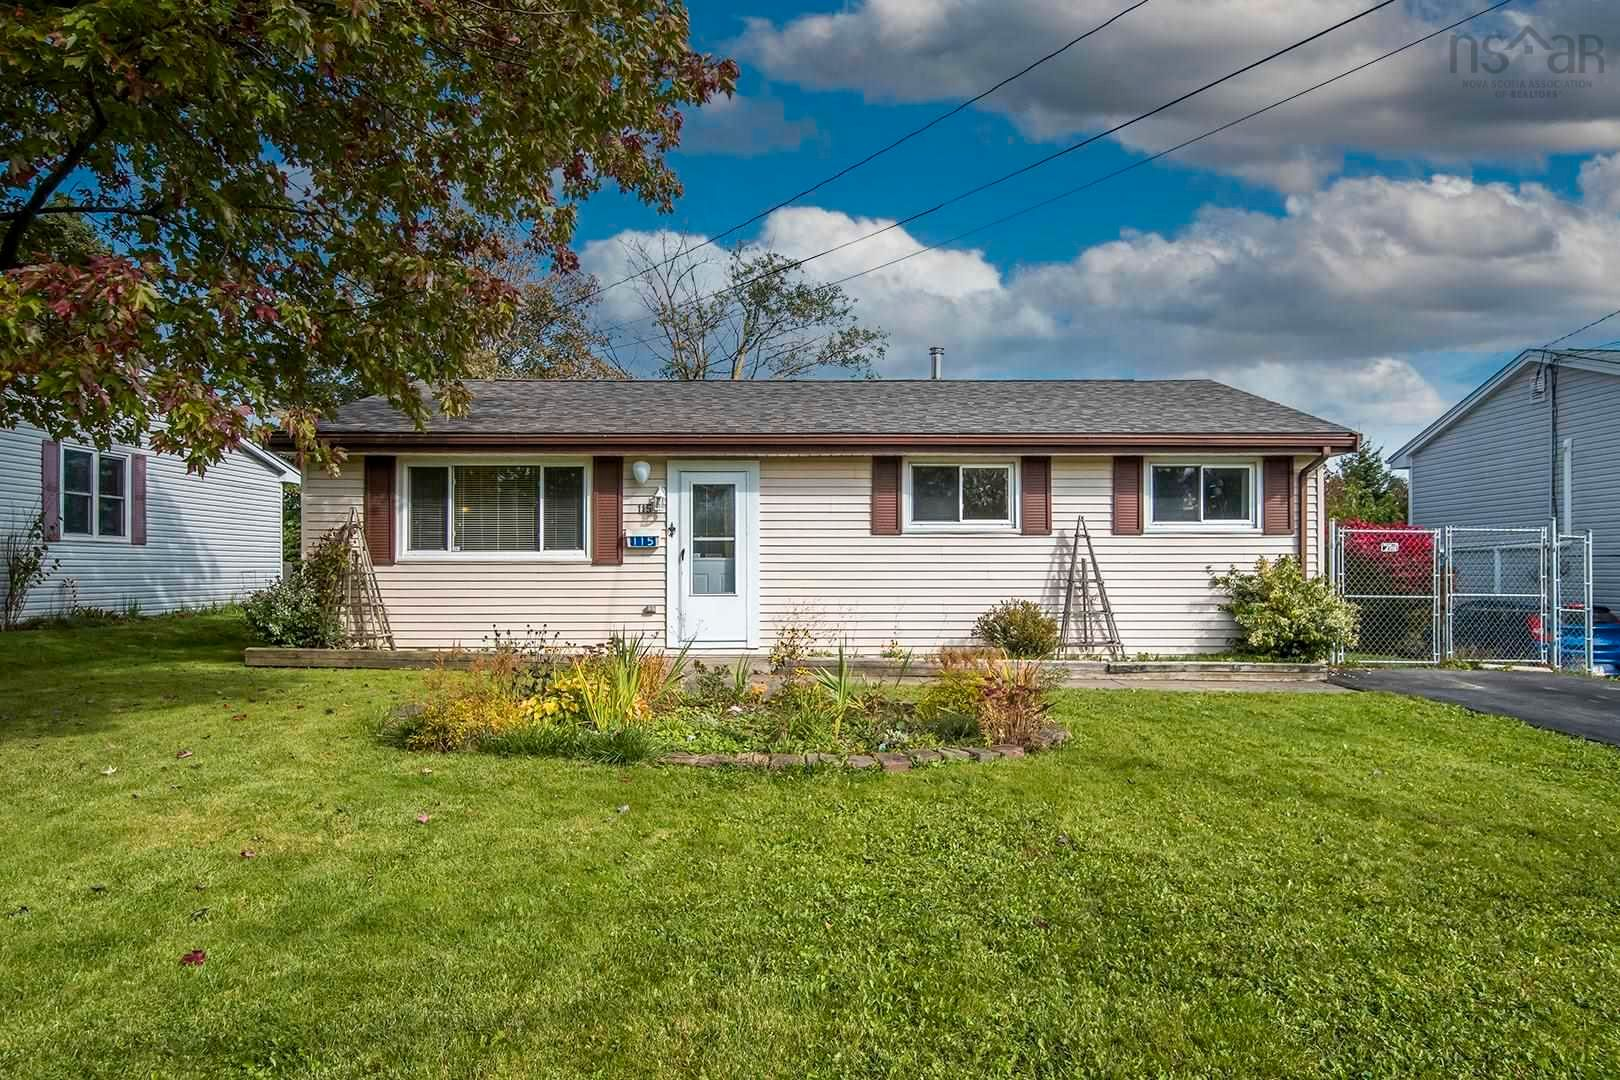 Main Photo: 115 Montague Road in Dartmouth: 15-Forest Hills Residential for sale (Halifax-Dartmouth)  : MLS®# 202125865